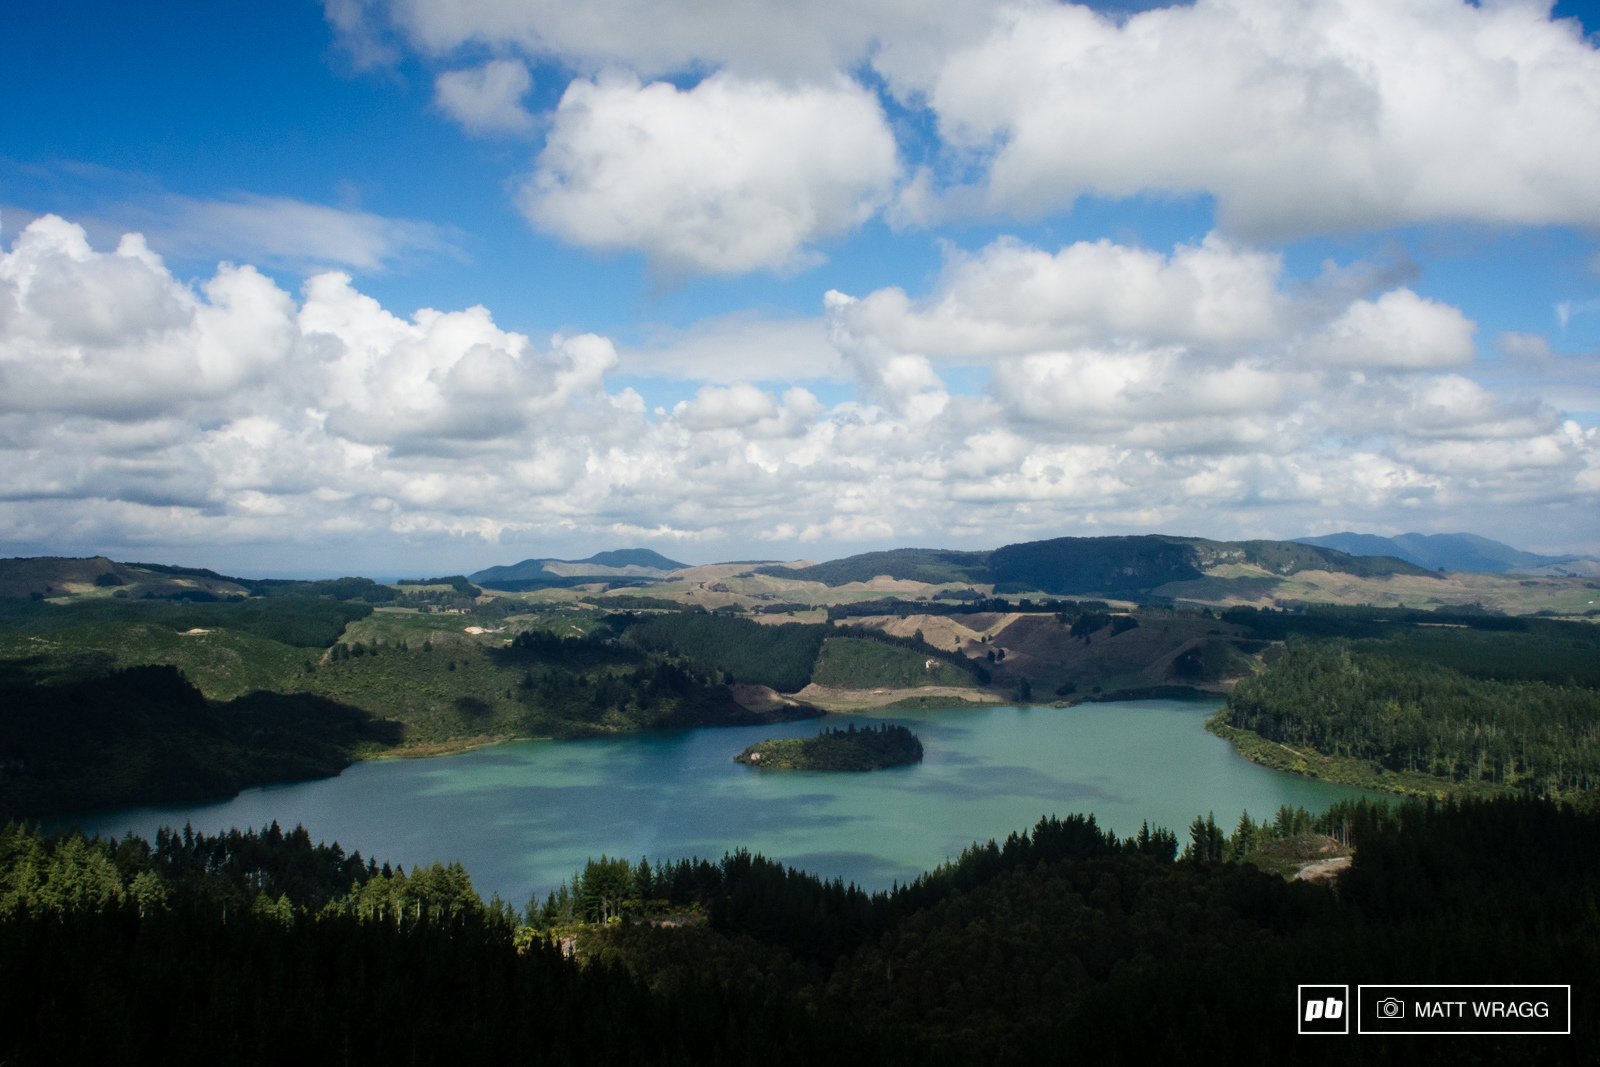 Stages one to six run through the Whakawera forest skirting around the stunning green lake in places.